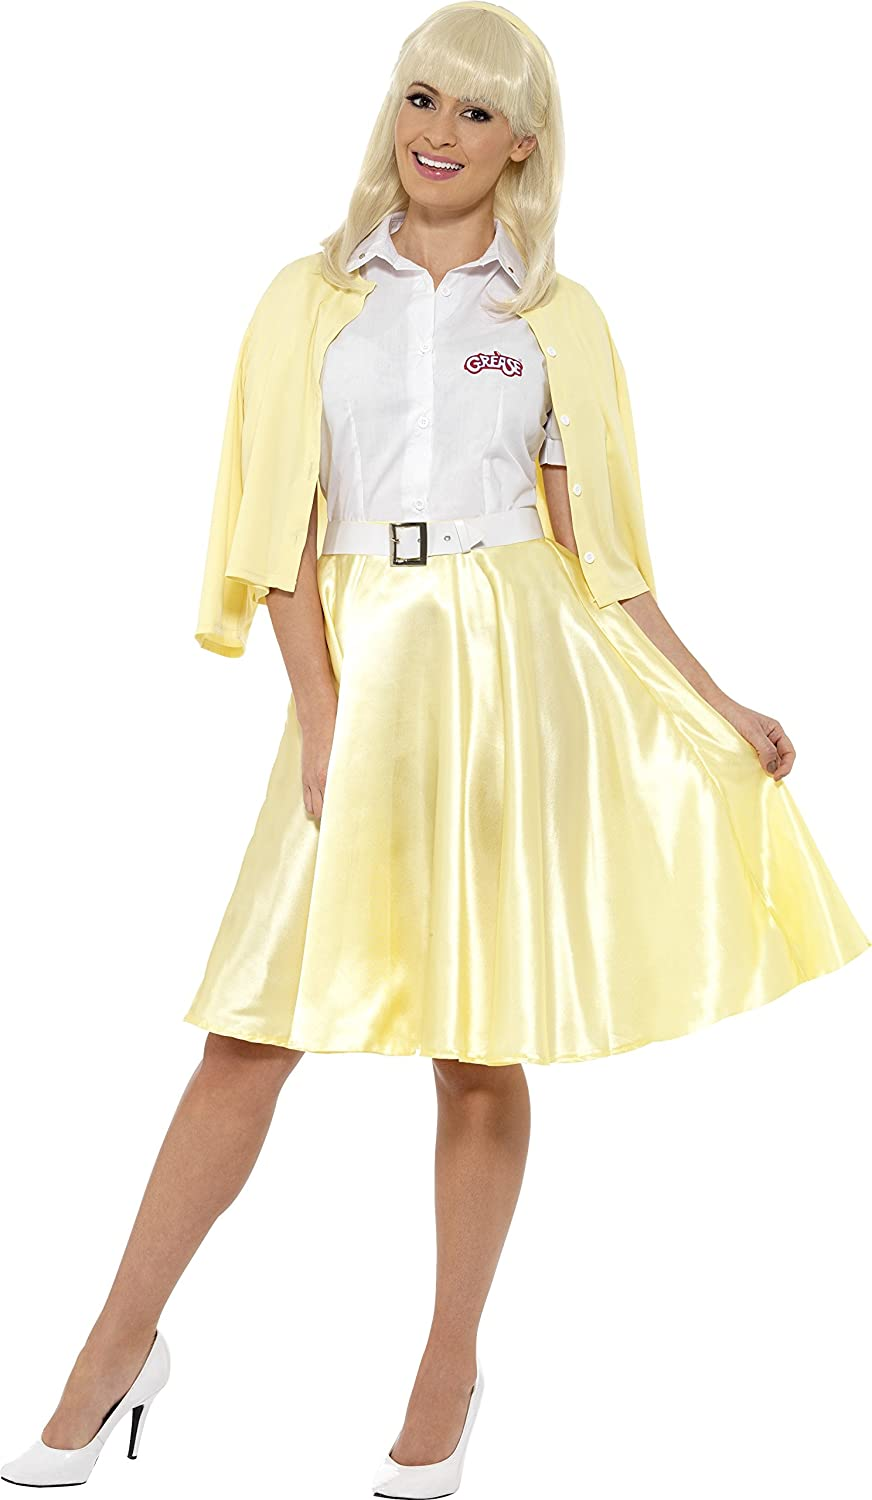 50s Costumes | 50s Halloween Costumes Grease Good Sandy Costume (Large) $38.58 AT vintagedancer.com